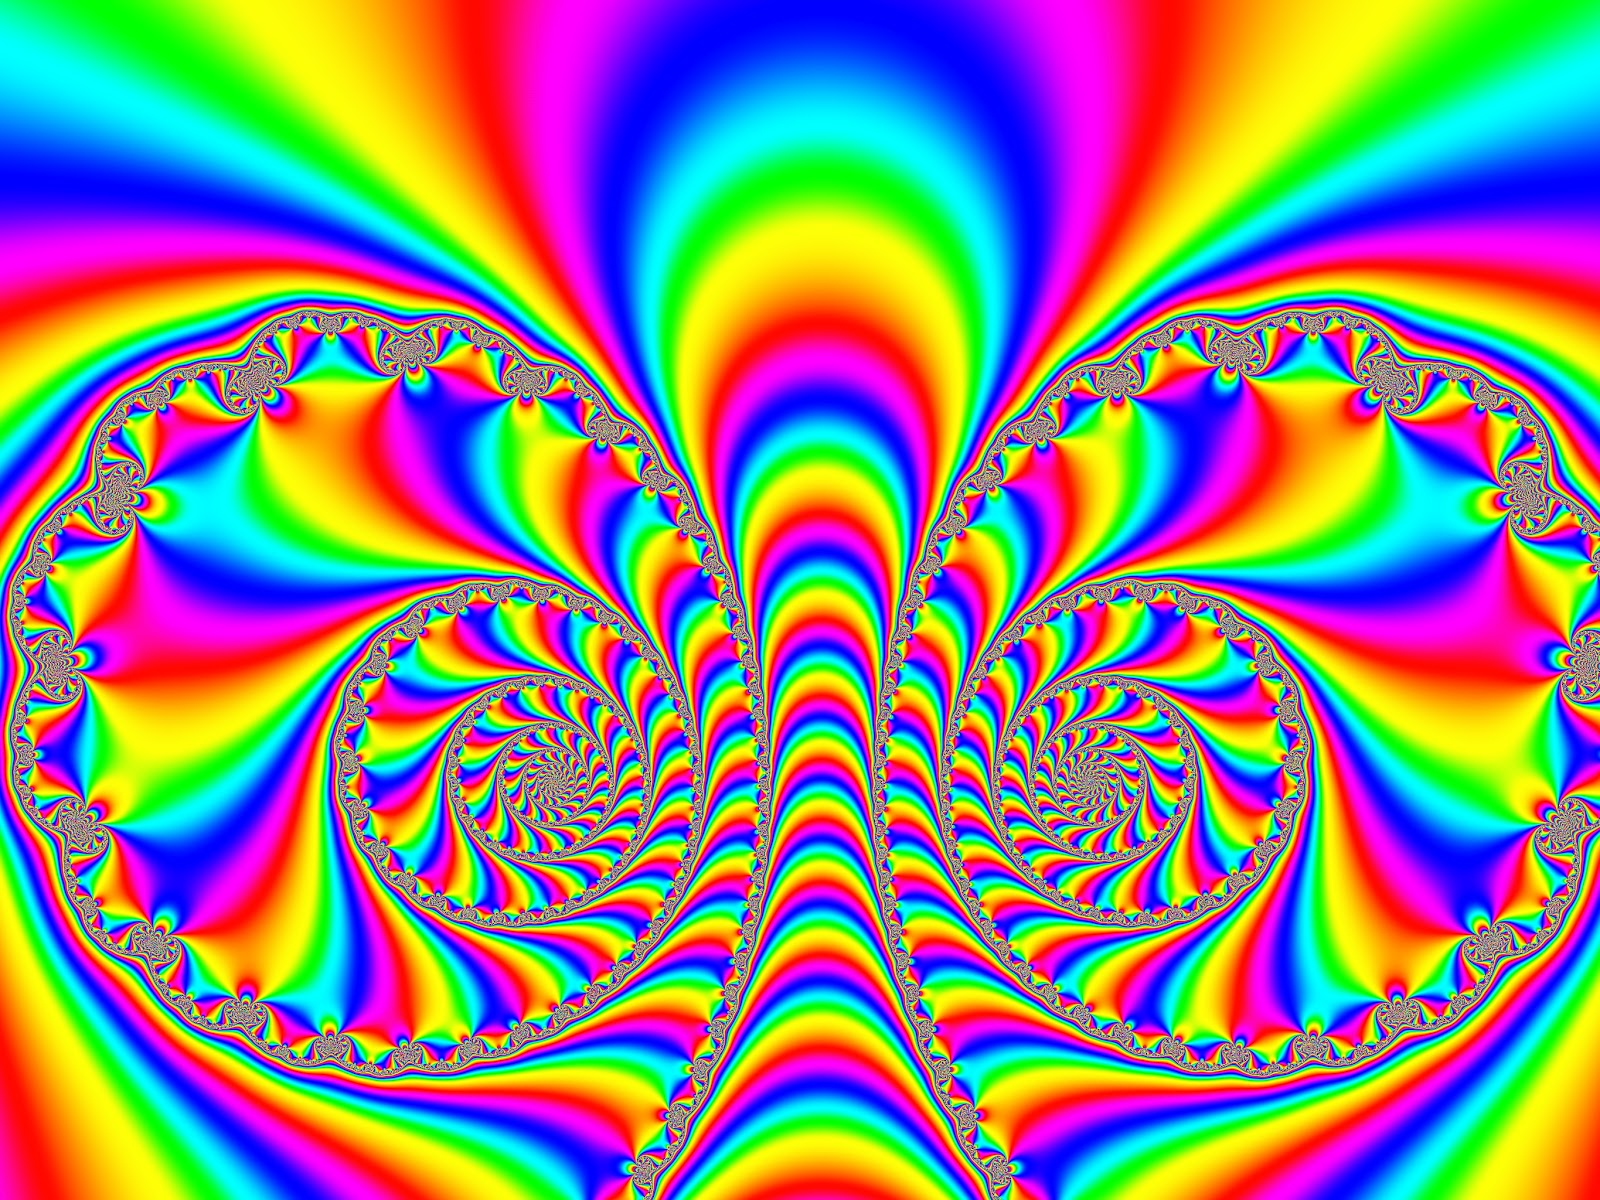 trippy illusion optical trick picutres challenge accept every wallpapers desktop alien eyes